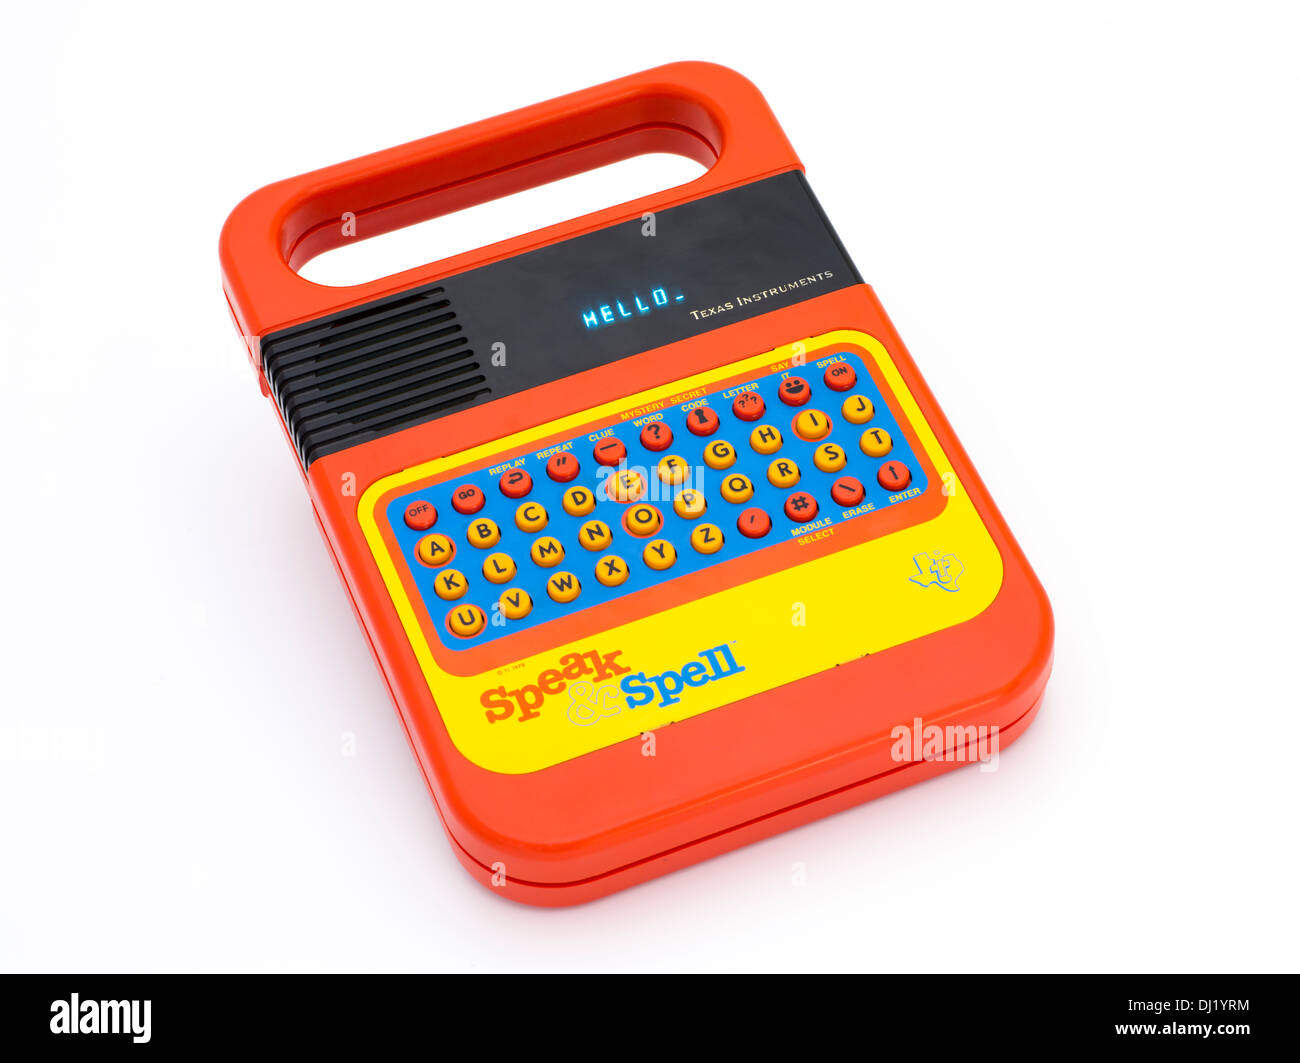 Original Speak & Spell by Texas Instruments 1978 an electronic handheld educational toy - Stock Image